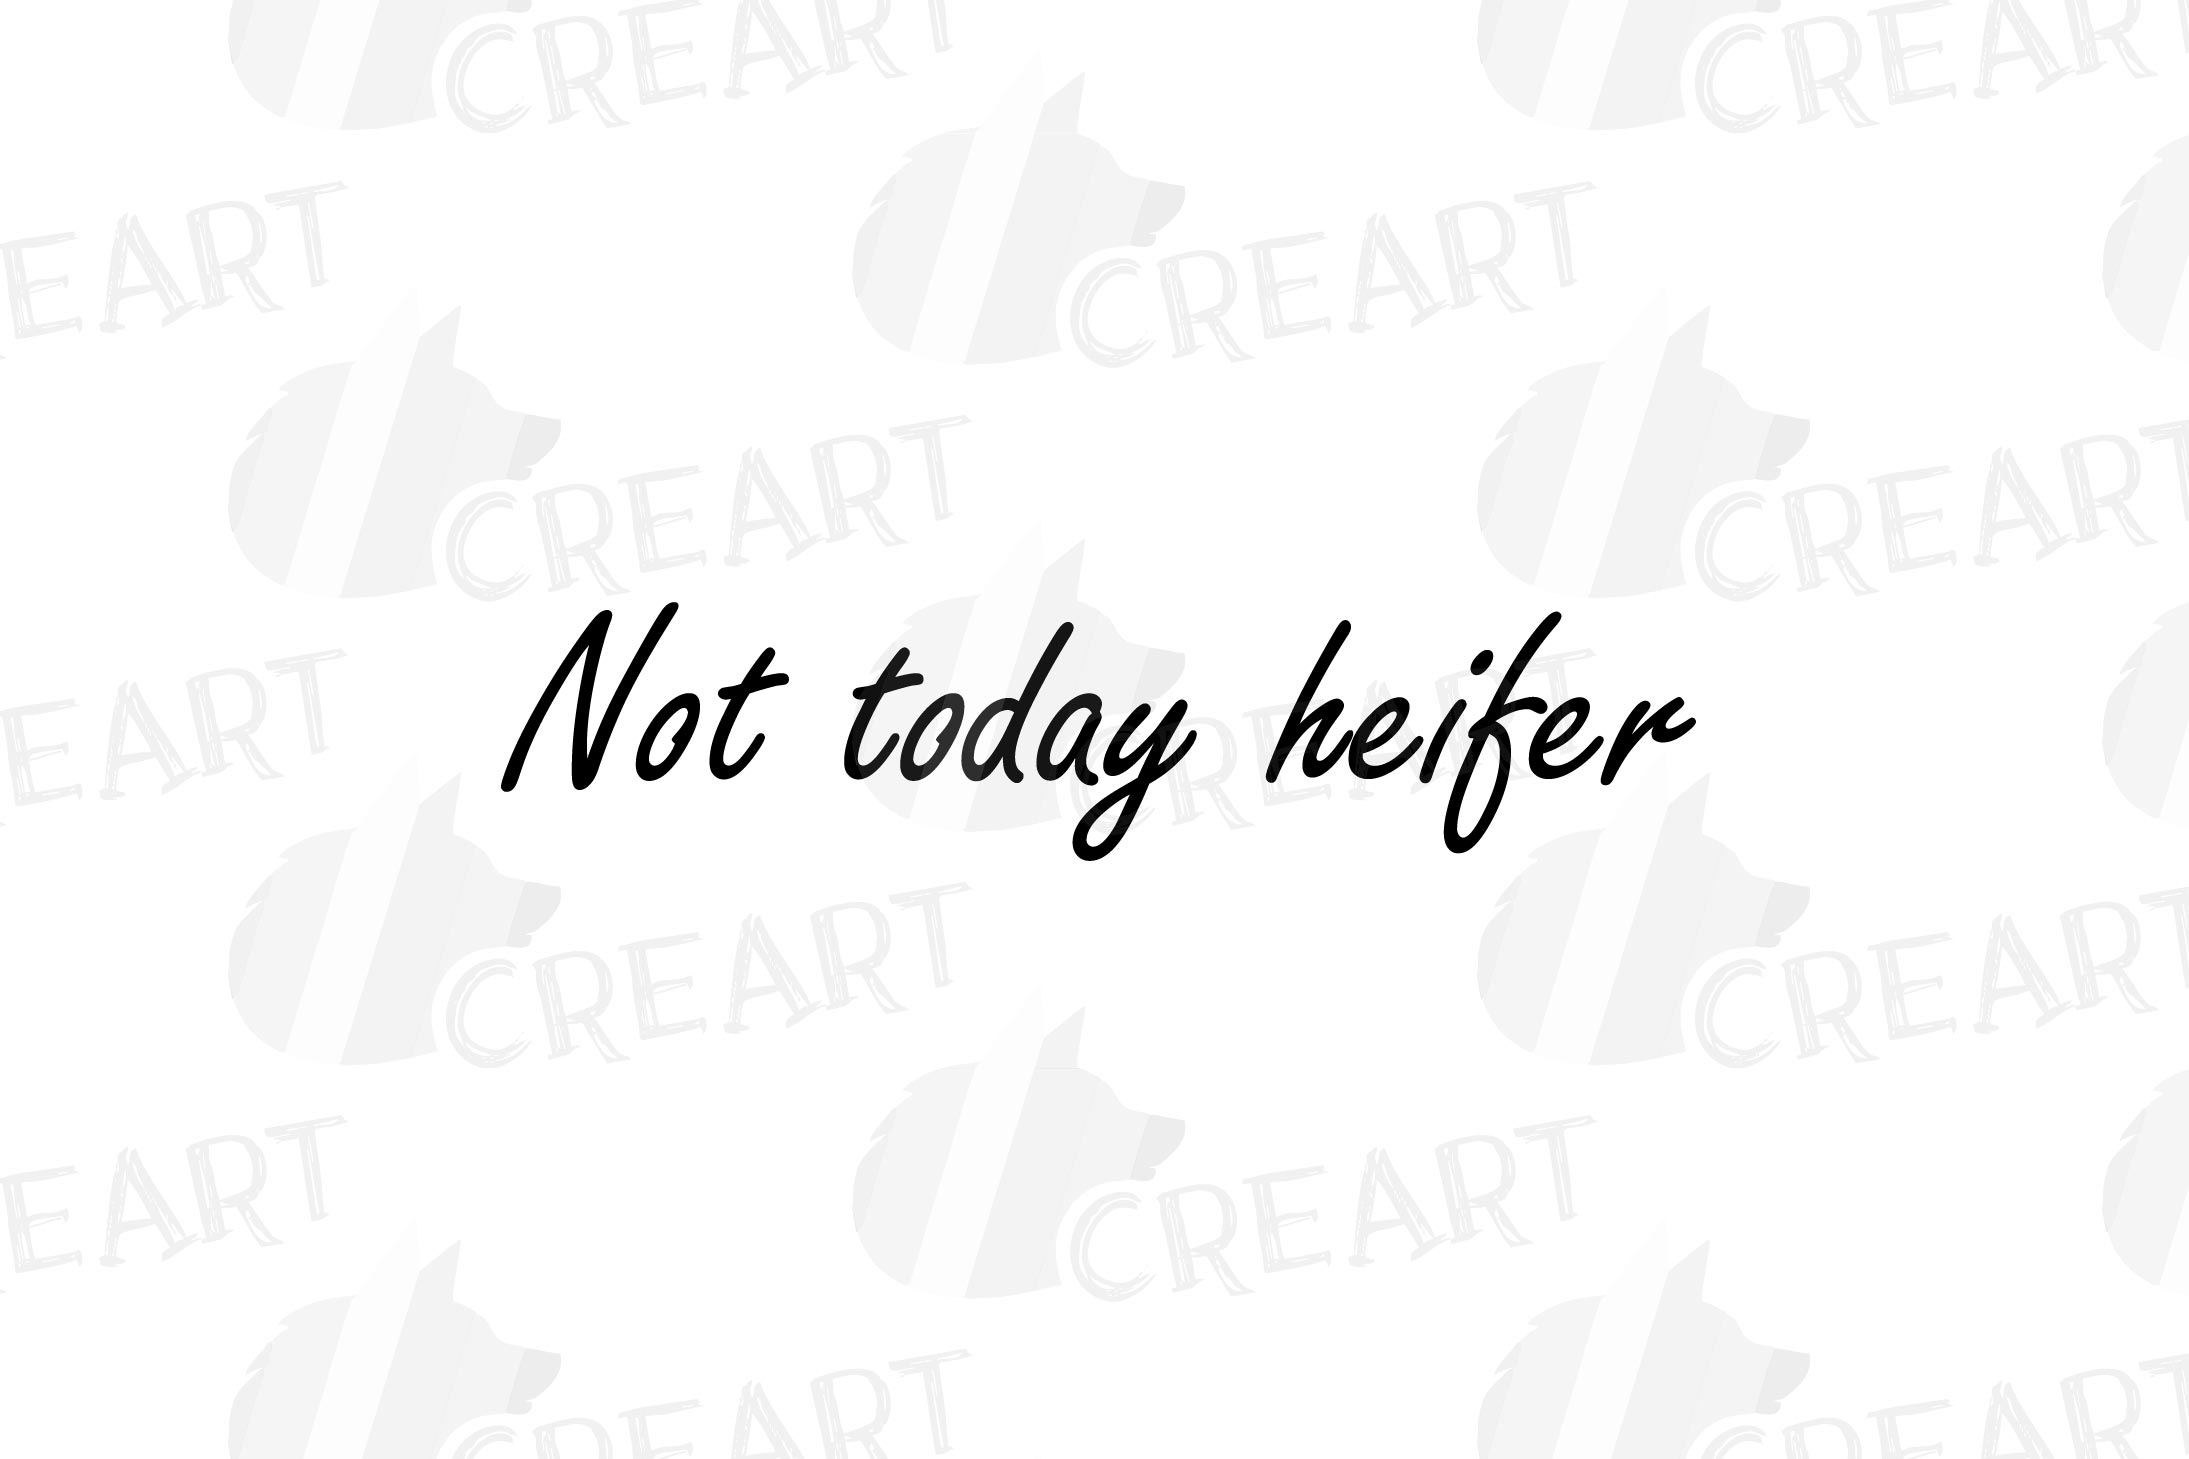 Cows with floral crown clip art. Not today heifer graphic example image 18